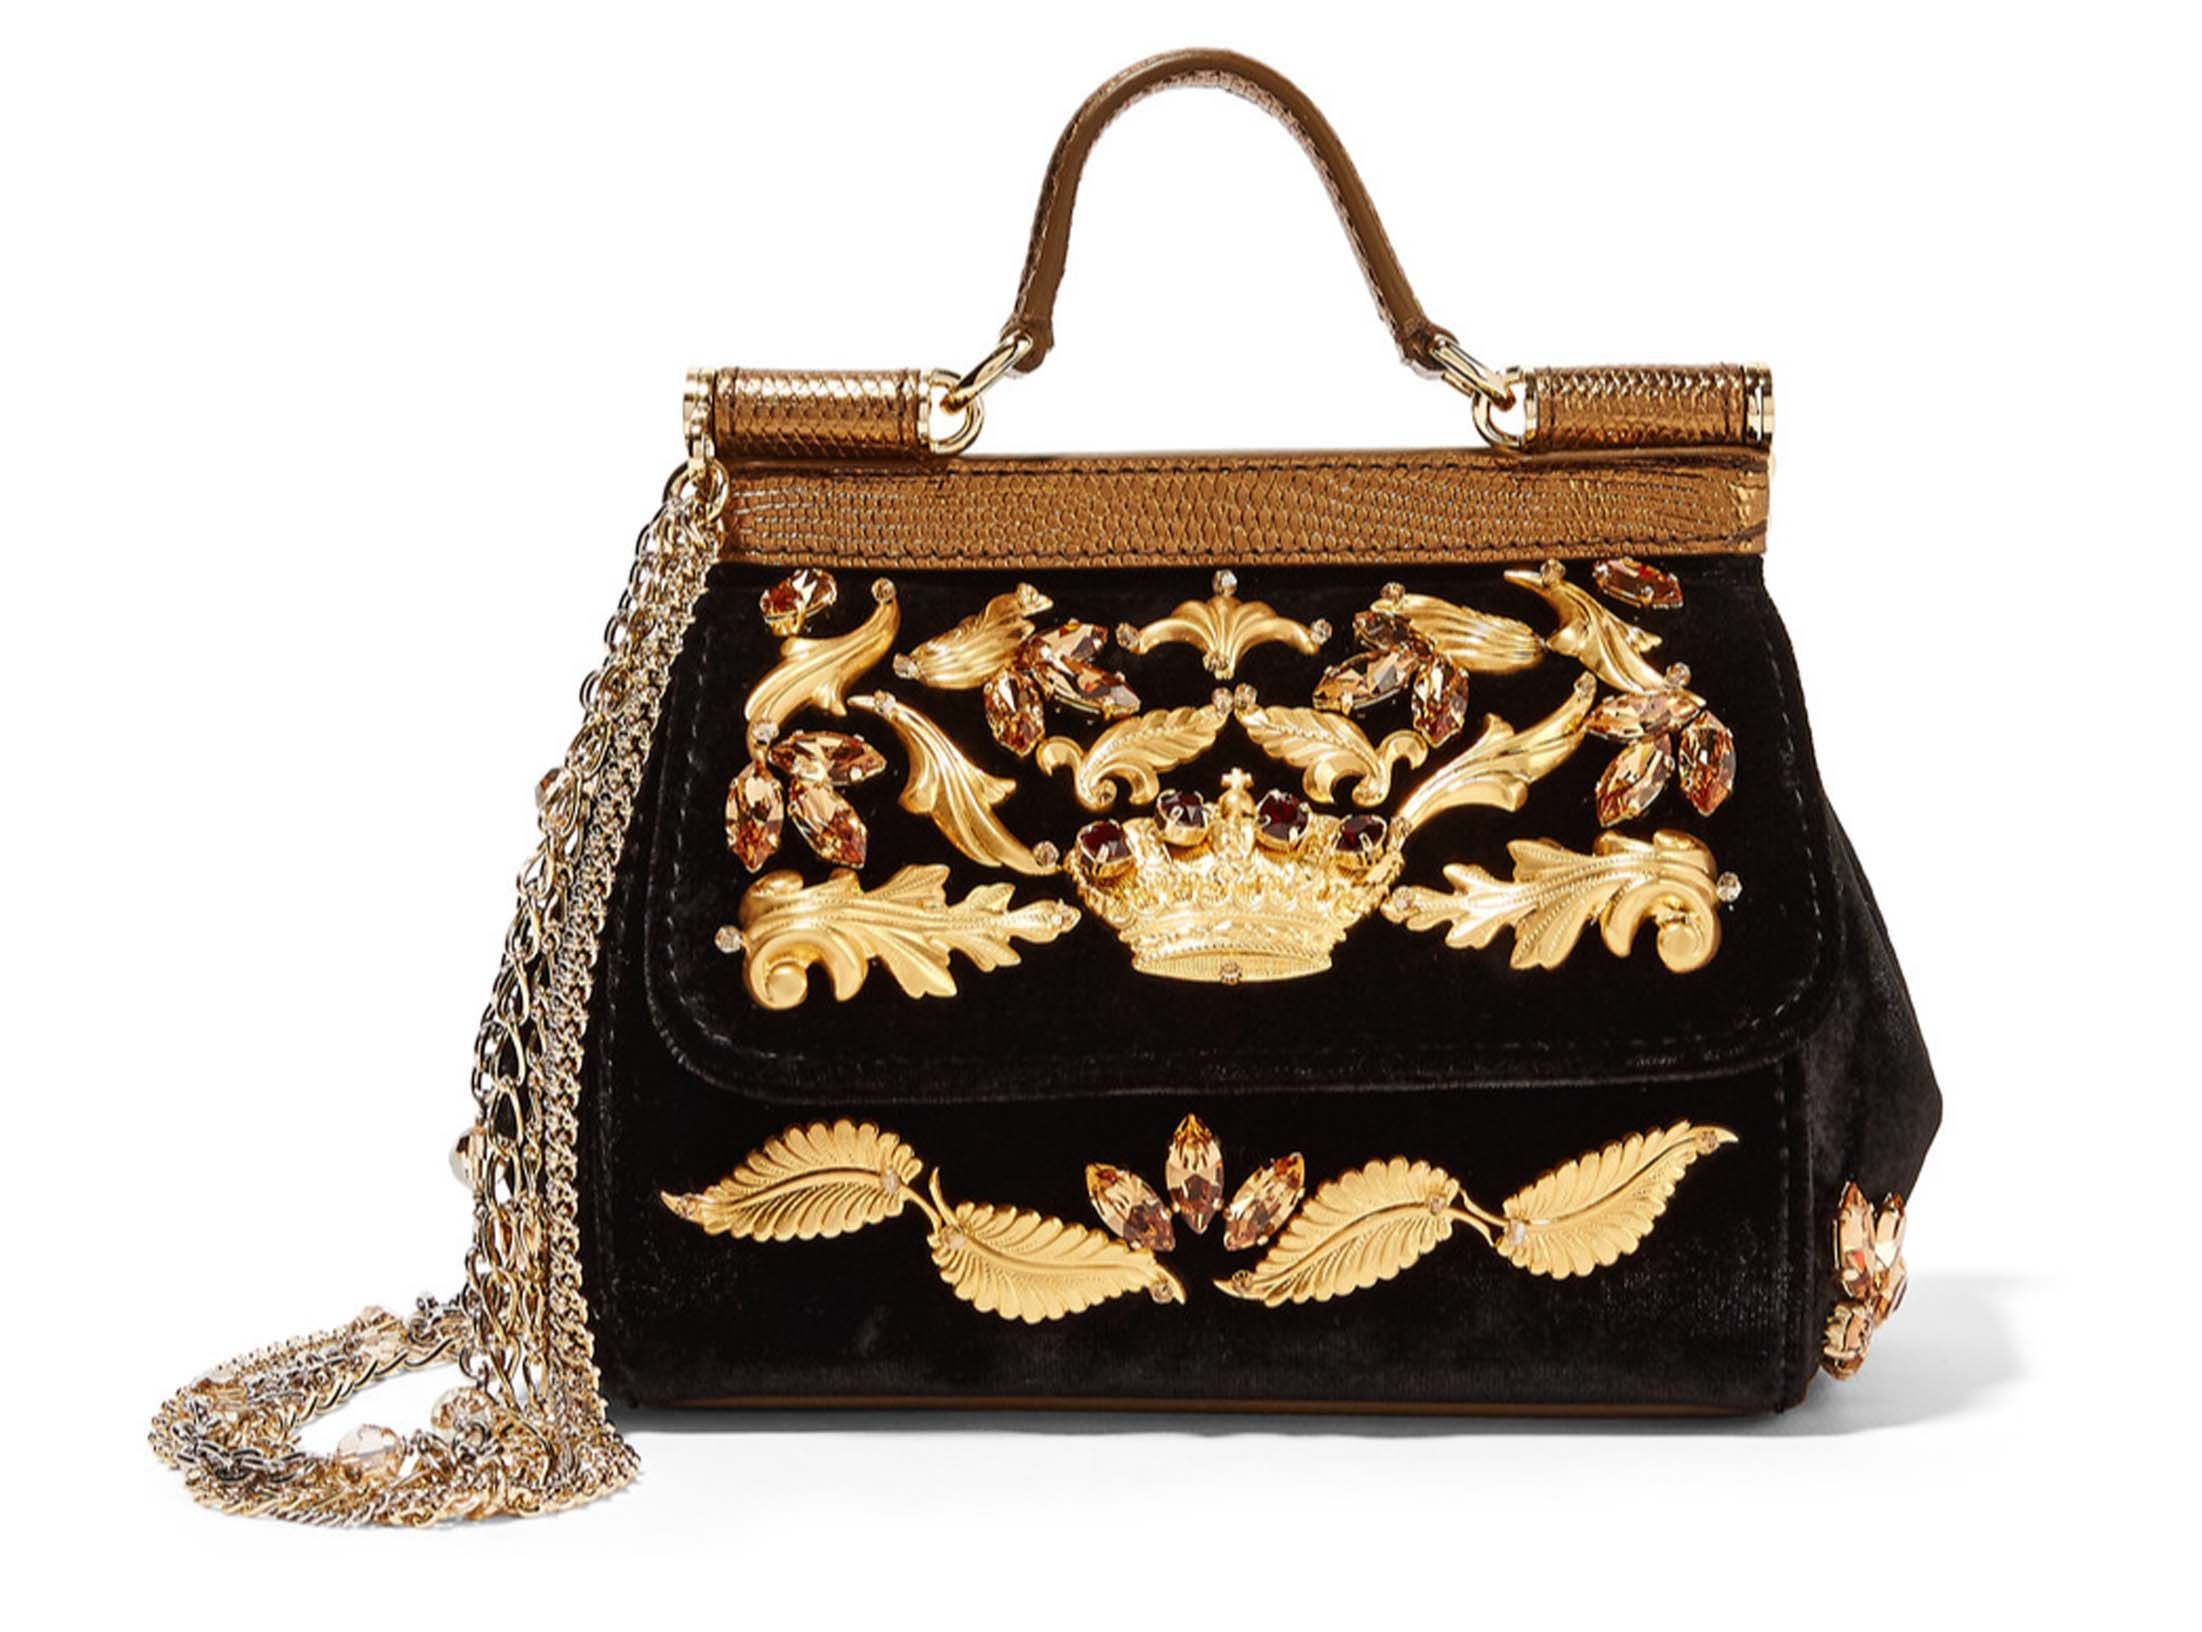 4787157367b3 Sicily bag by Dolce and Gabbana